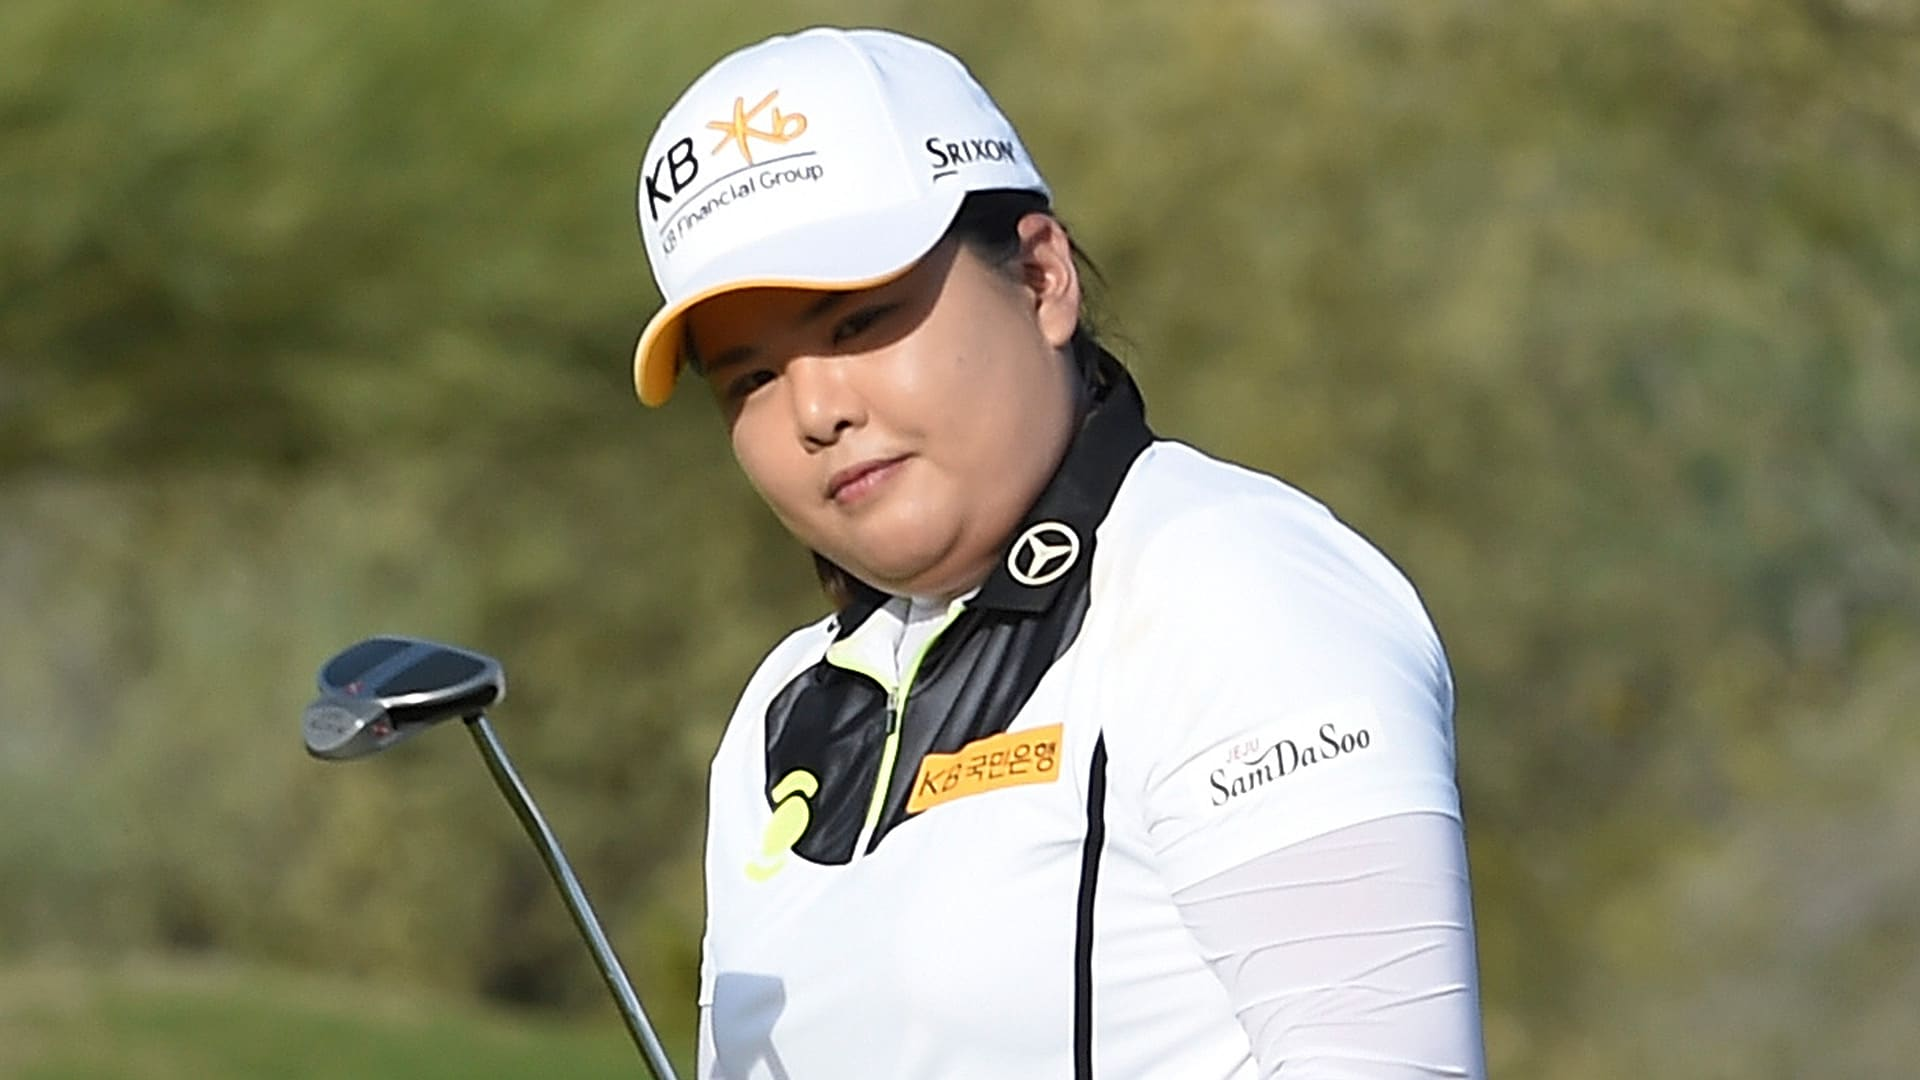 Inbee Park Switches To Blade Putter At Bank Of Hope Founders Golf Channel